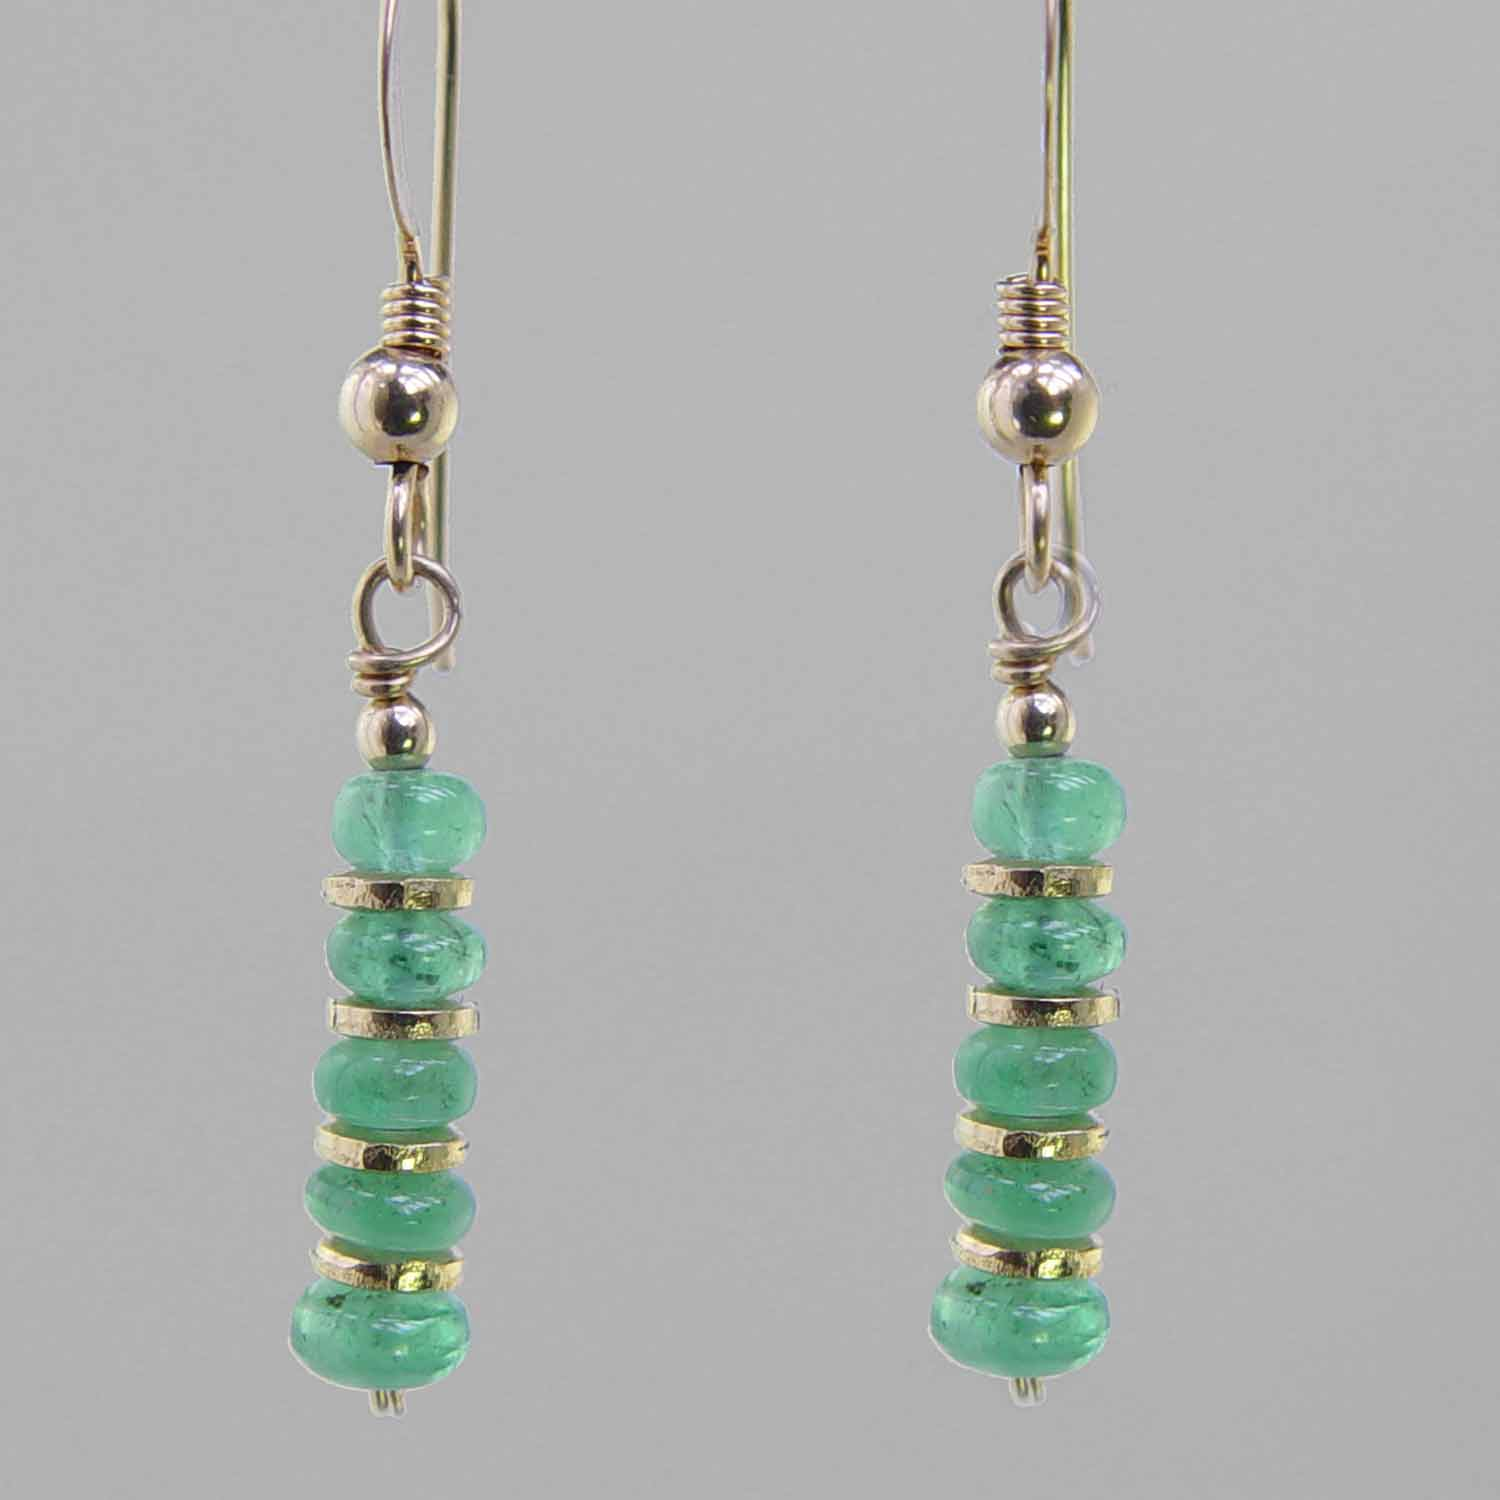 Emerald Rondelle Earrings